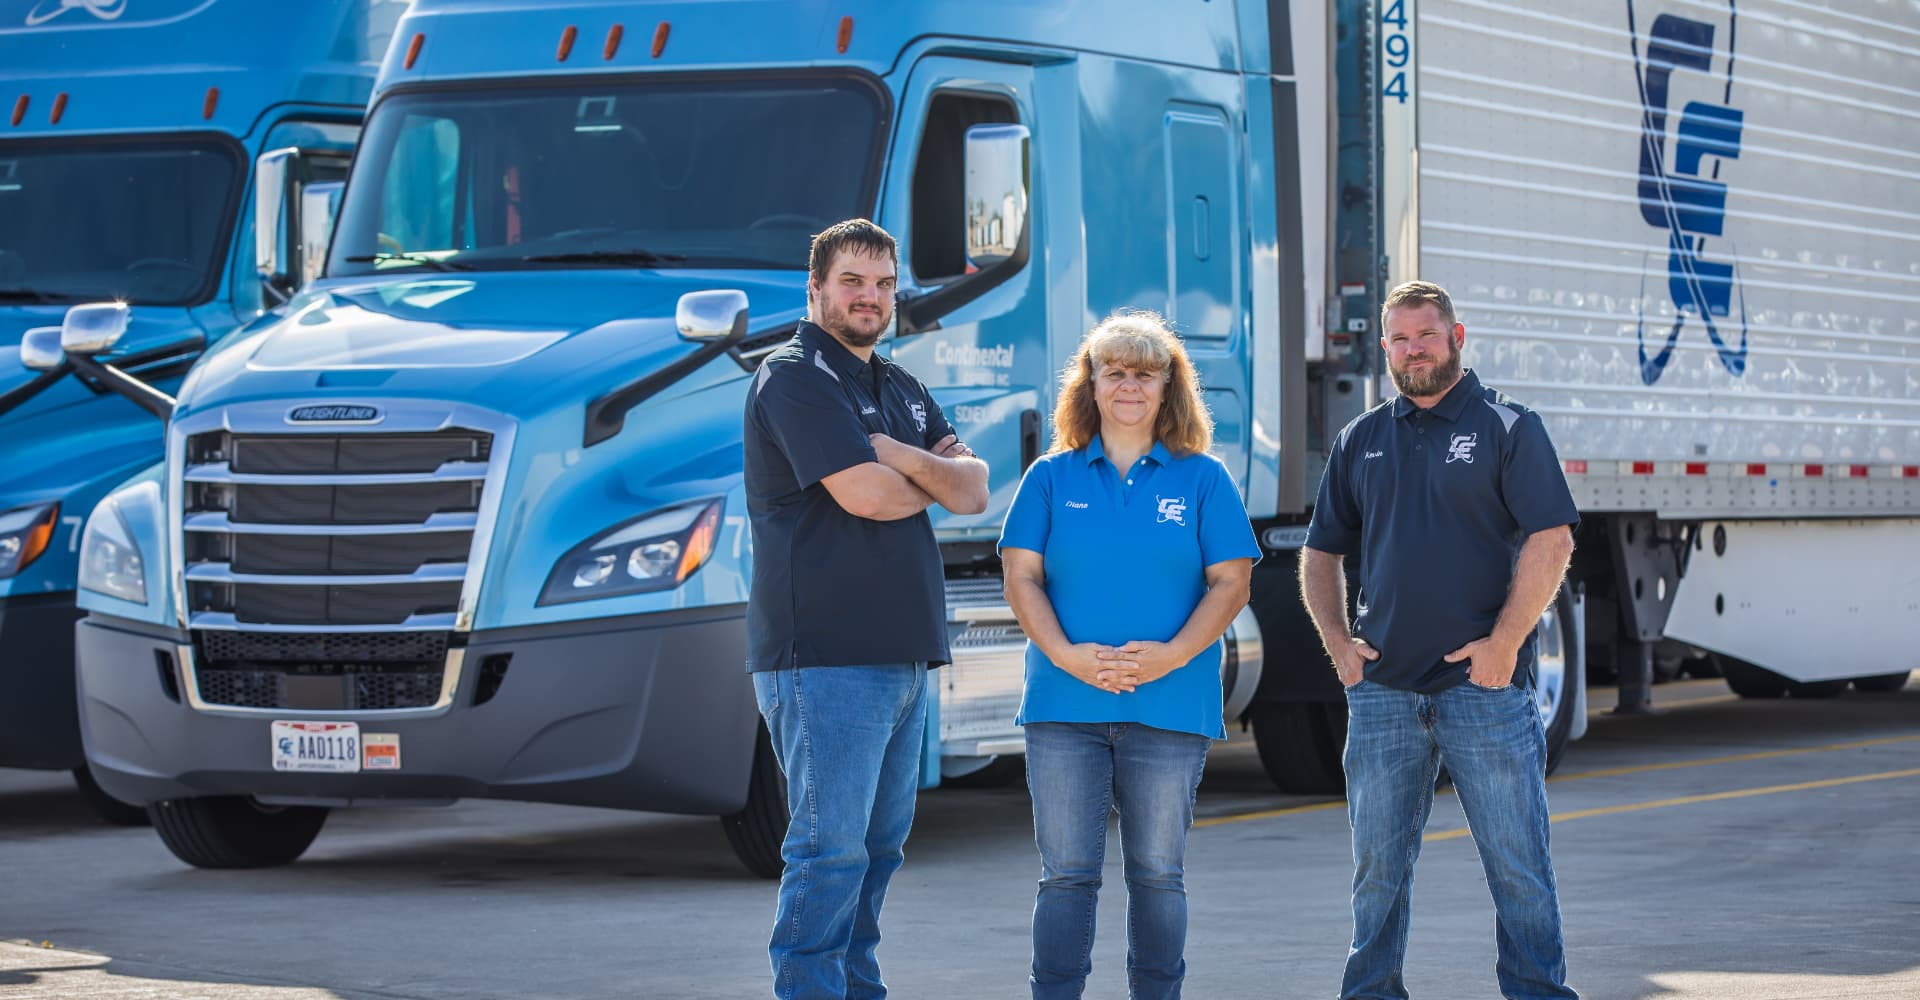 Continental Express employees